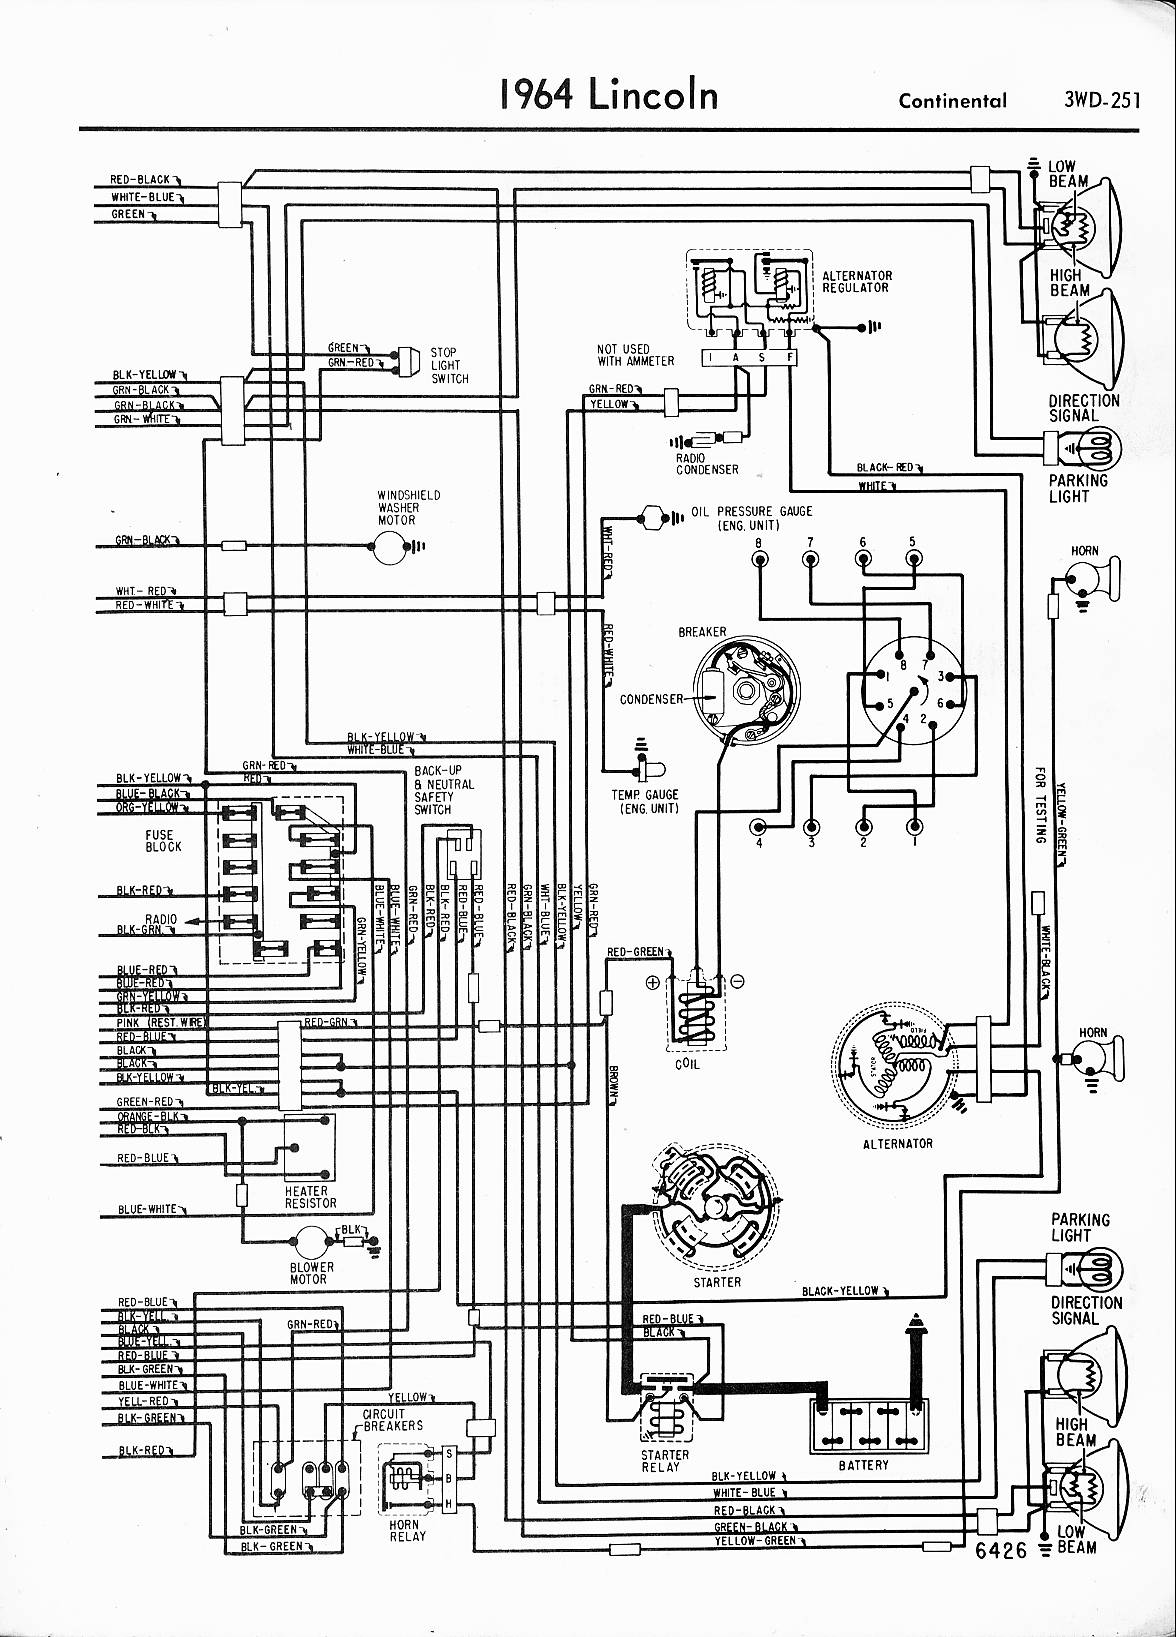 [NRIO_4796]   1C94B2C 1994 Ford Thunderbird Wiring Diagram | Wiring Resources | 94 Lincoln Continental 3 8l Wiring Diagram |  | Wiring Resources